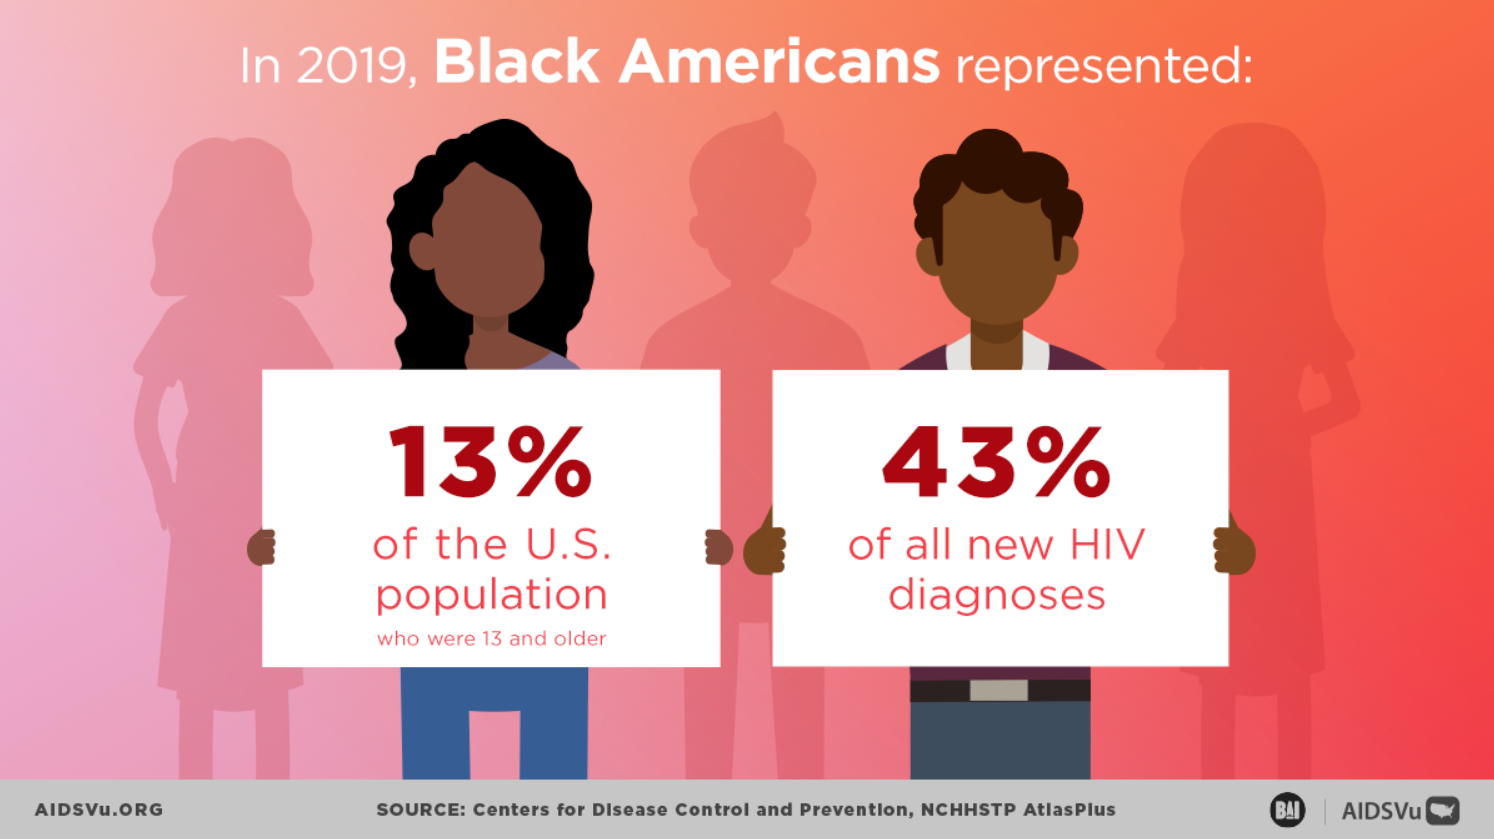 In 2019, Black American were 13% of US and 43% of new HIV diagnosis